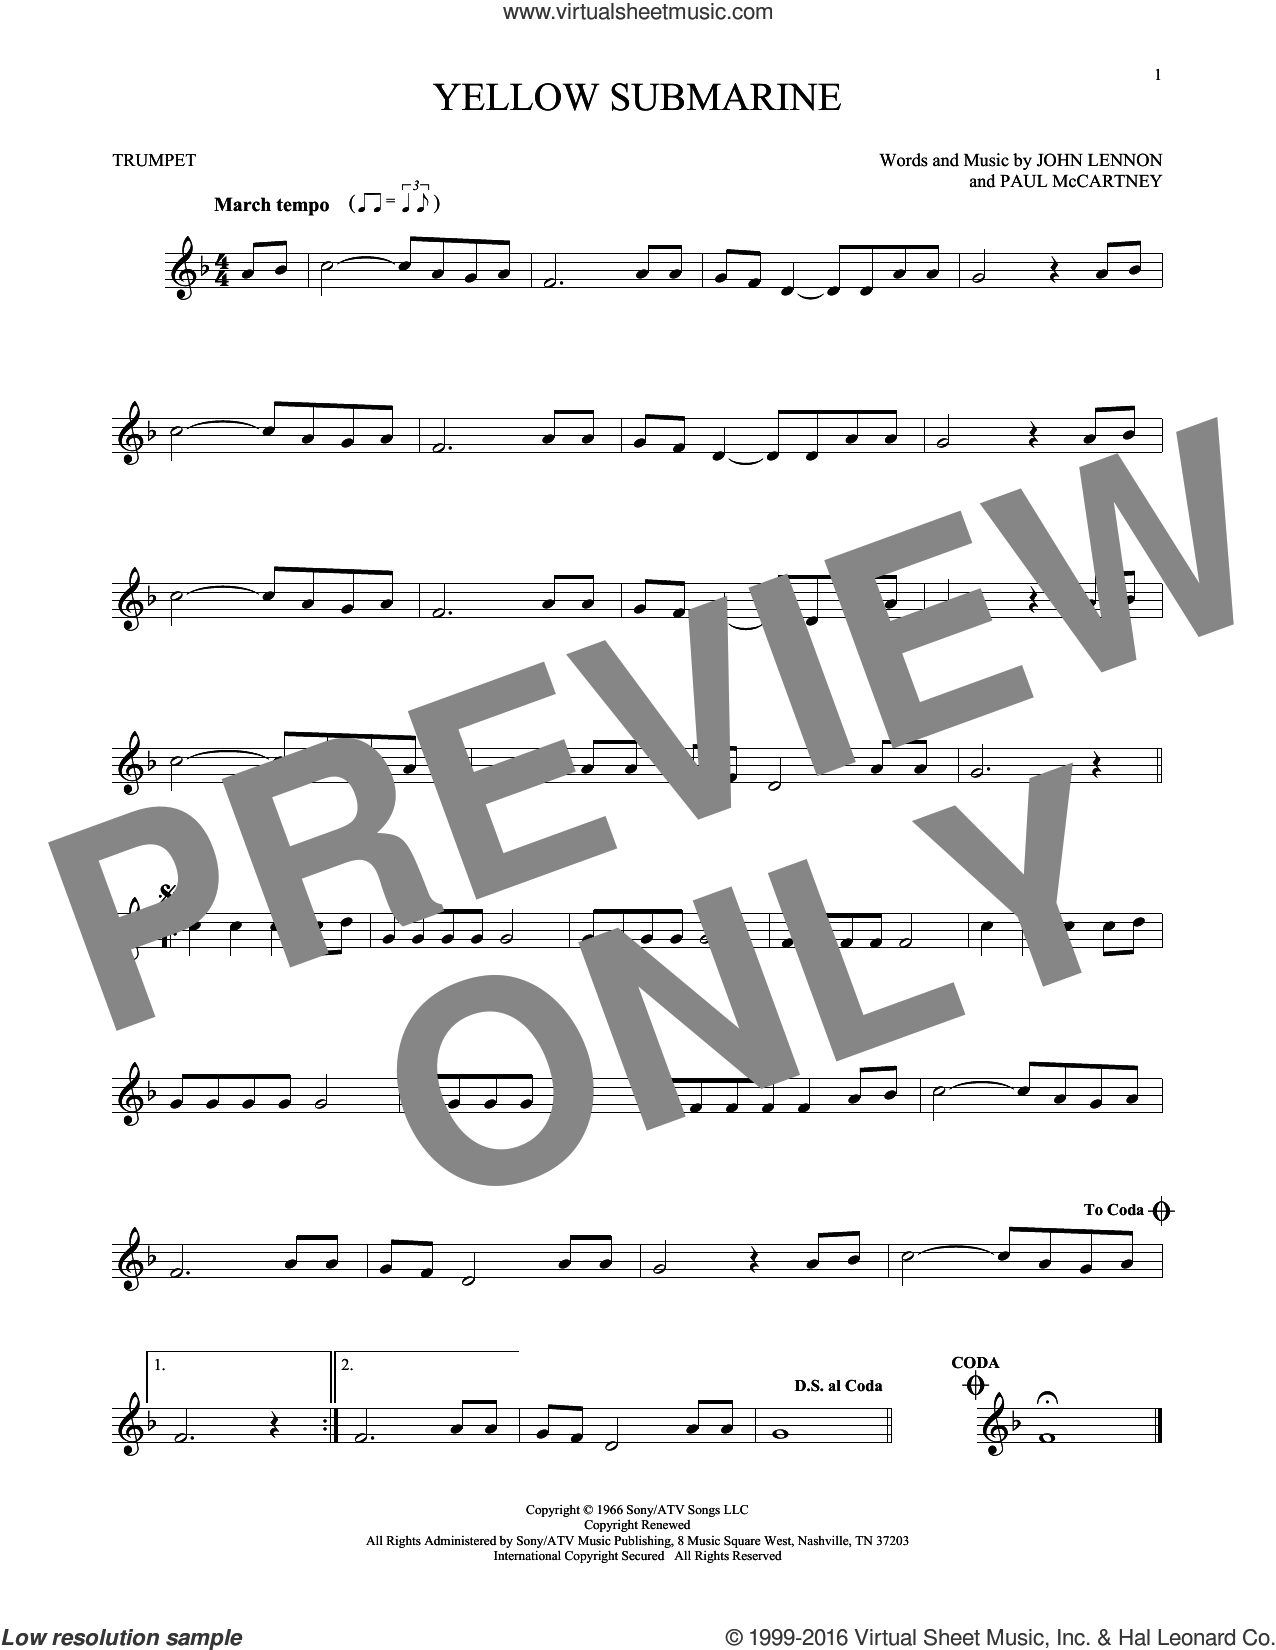 Yellow Submarine sheet music for trumpet solo by Paul McCartney